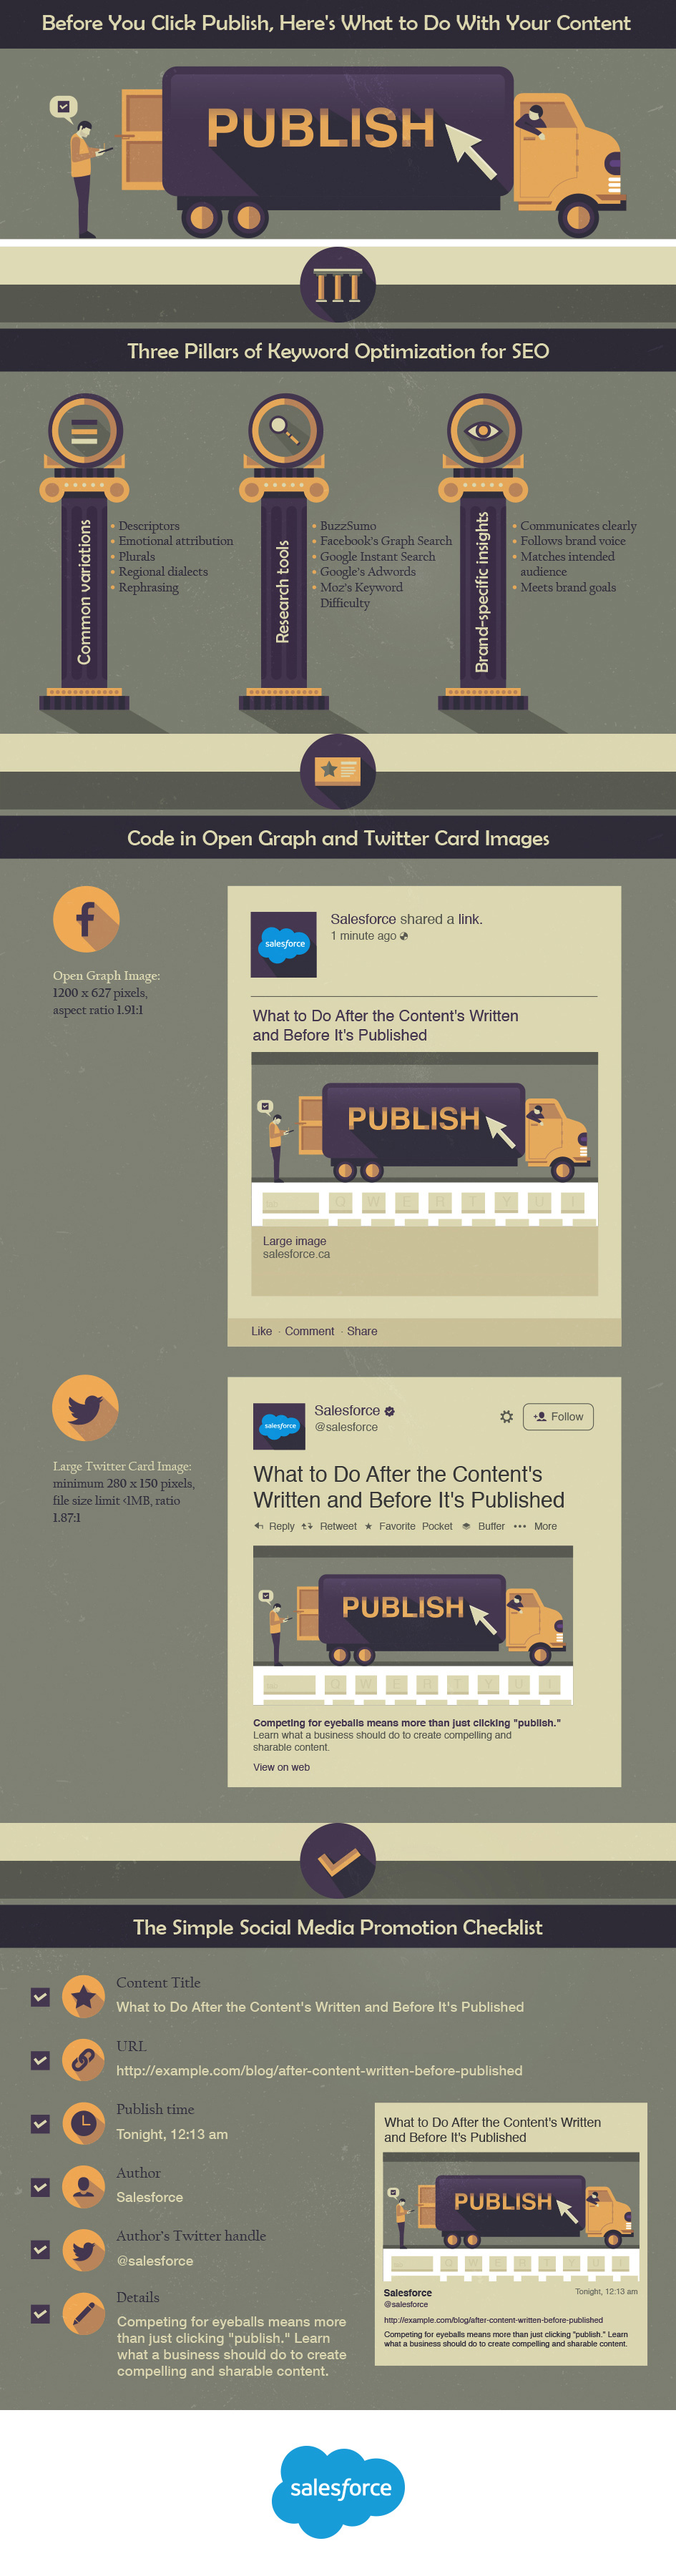 Before You Click Publish Infographic